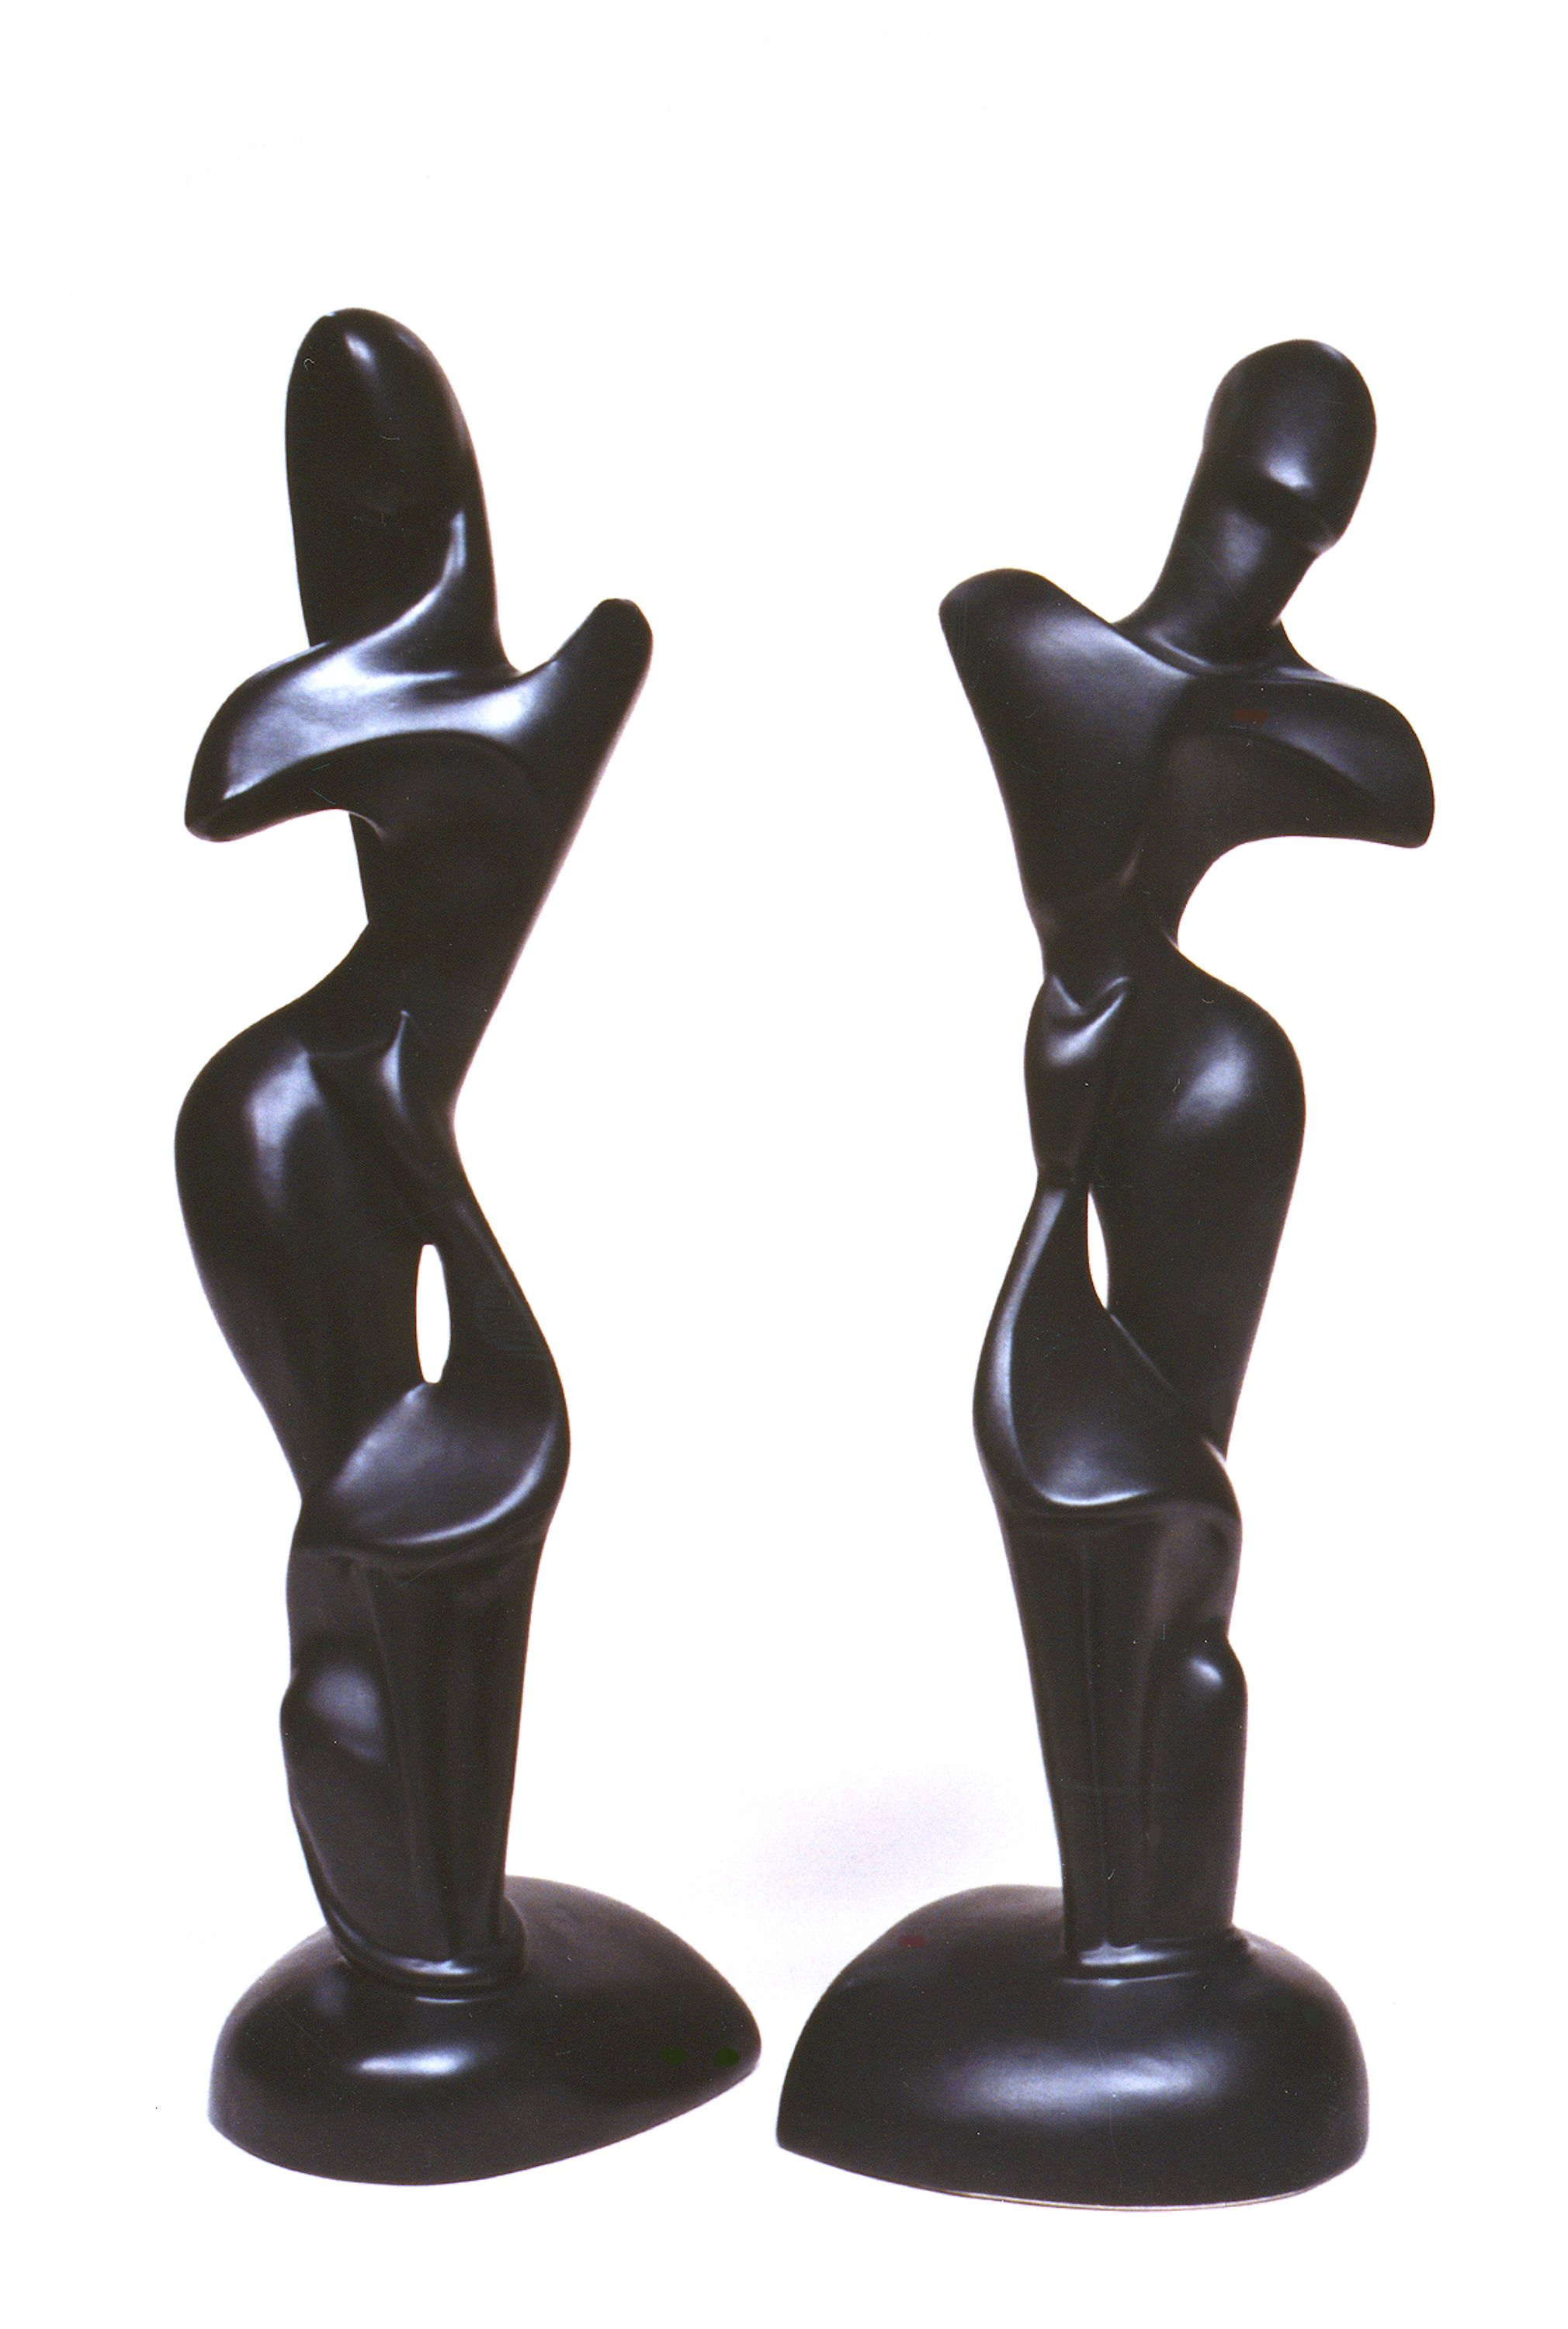 These black-glazed male & female abstract figures measure 21 inches in height. They are the work of Jean Yves Mock, a Brayton designer of the 1950s.